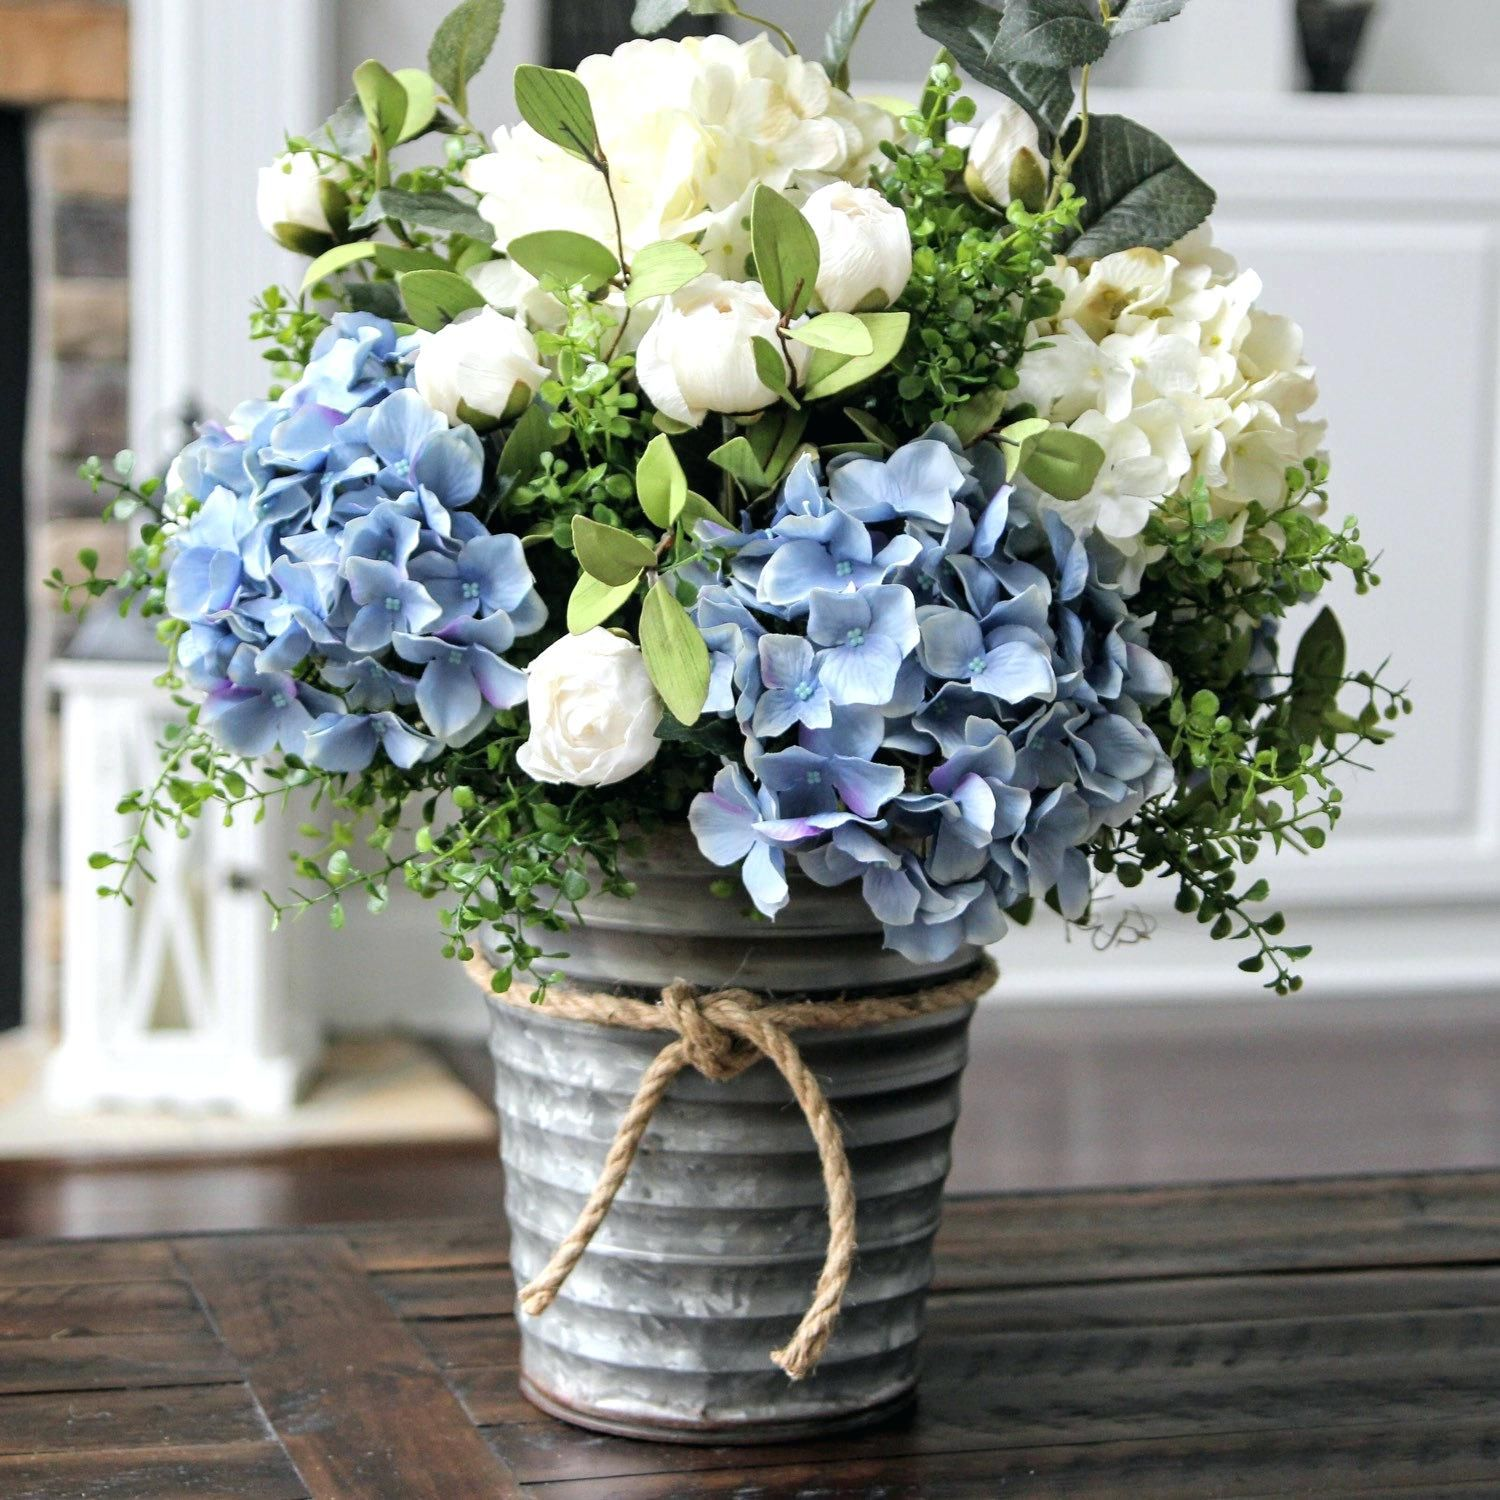 Interior Floral Arrangements With Hydrangeas Stunning Blue And Hydrangea Arrangements White Hydrangea Centerpieces Flower Arrangements